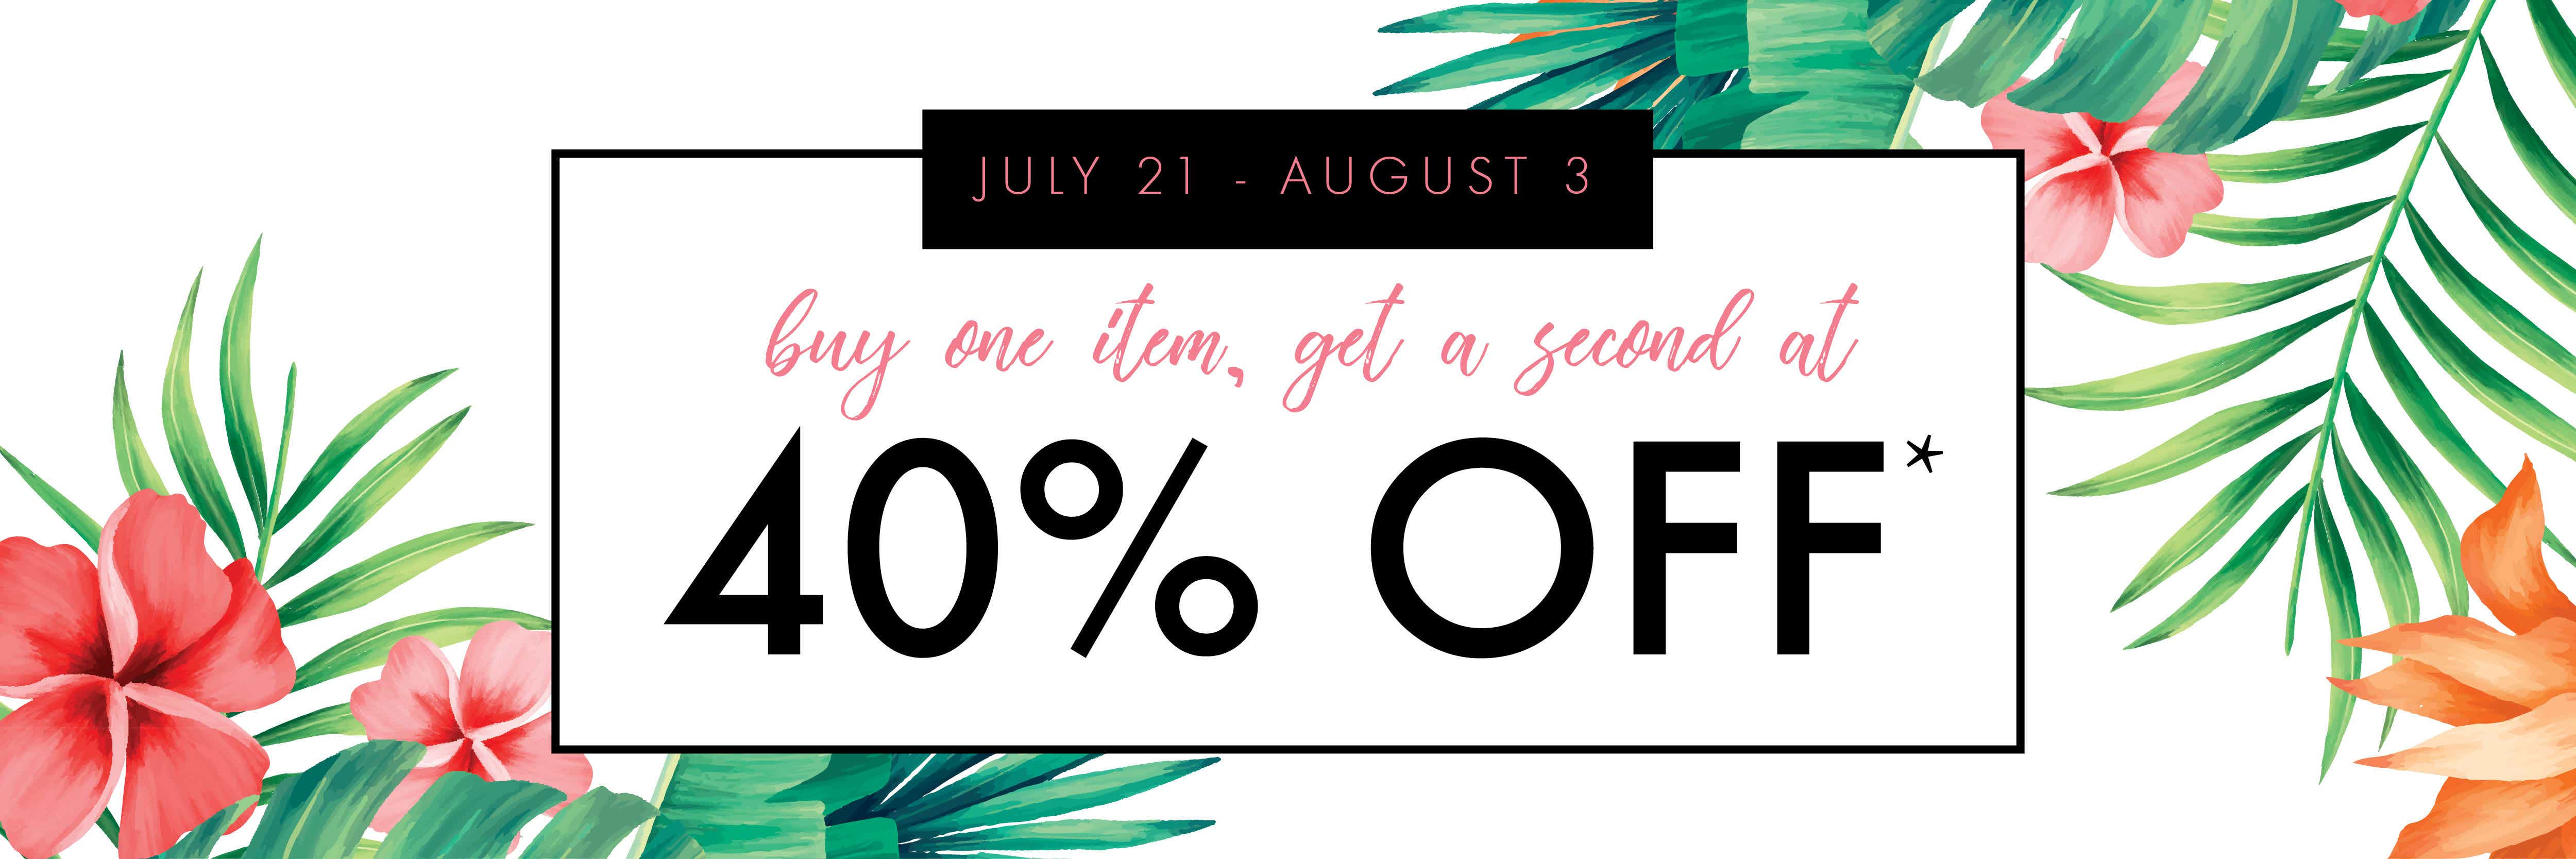 40% OFF selected items.  July 21st to August 3rd, 2019